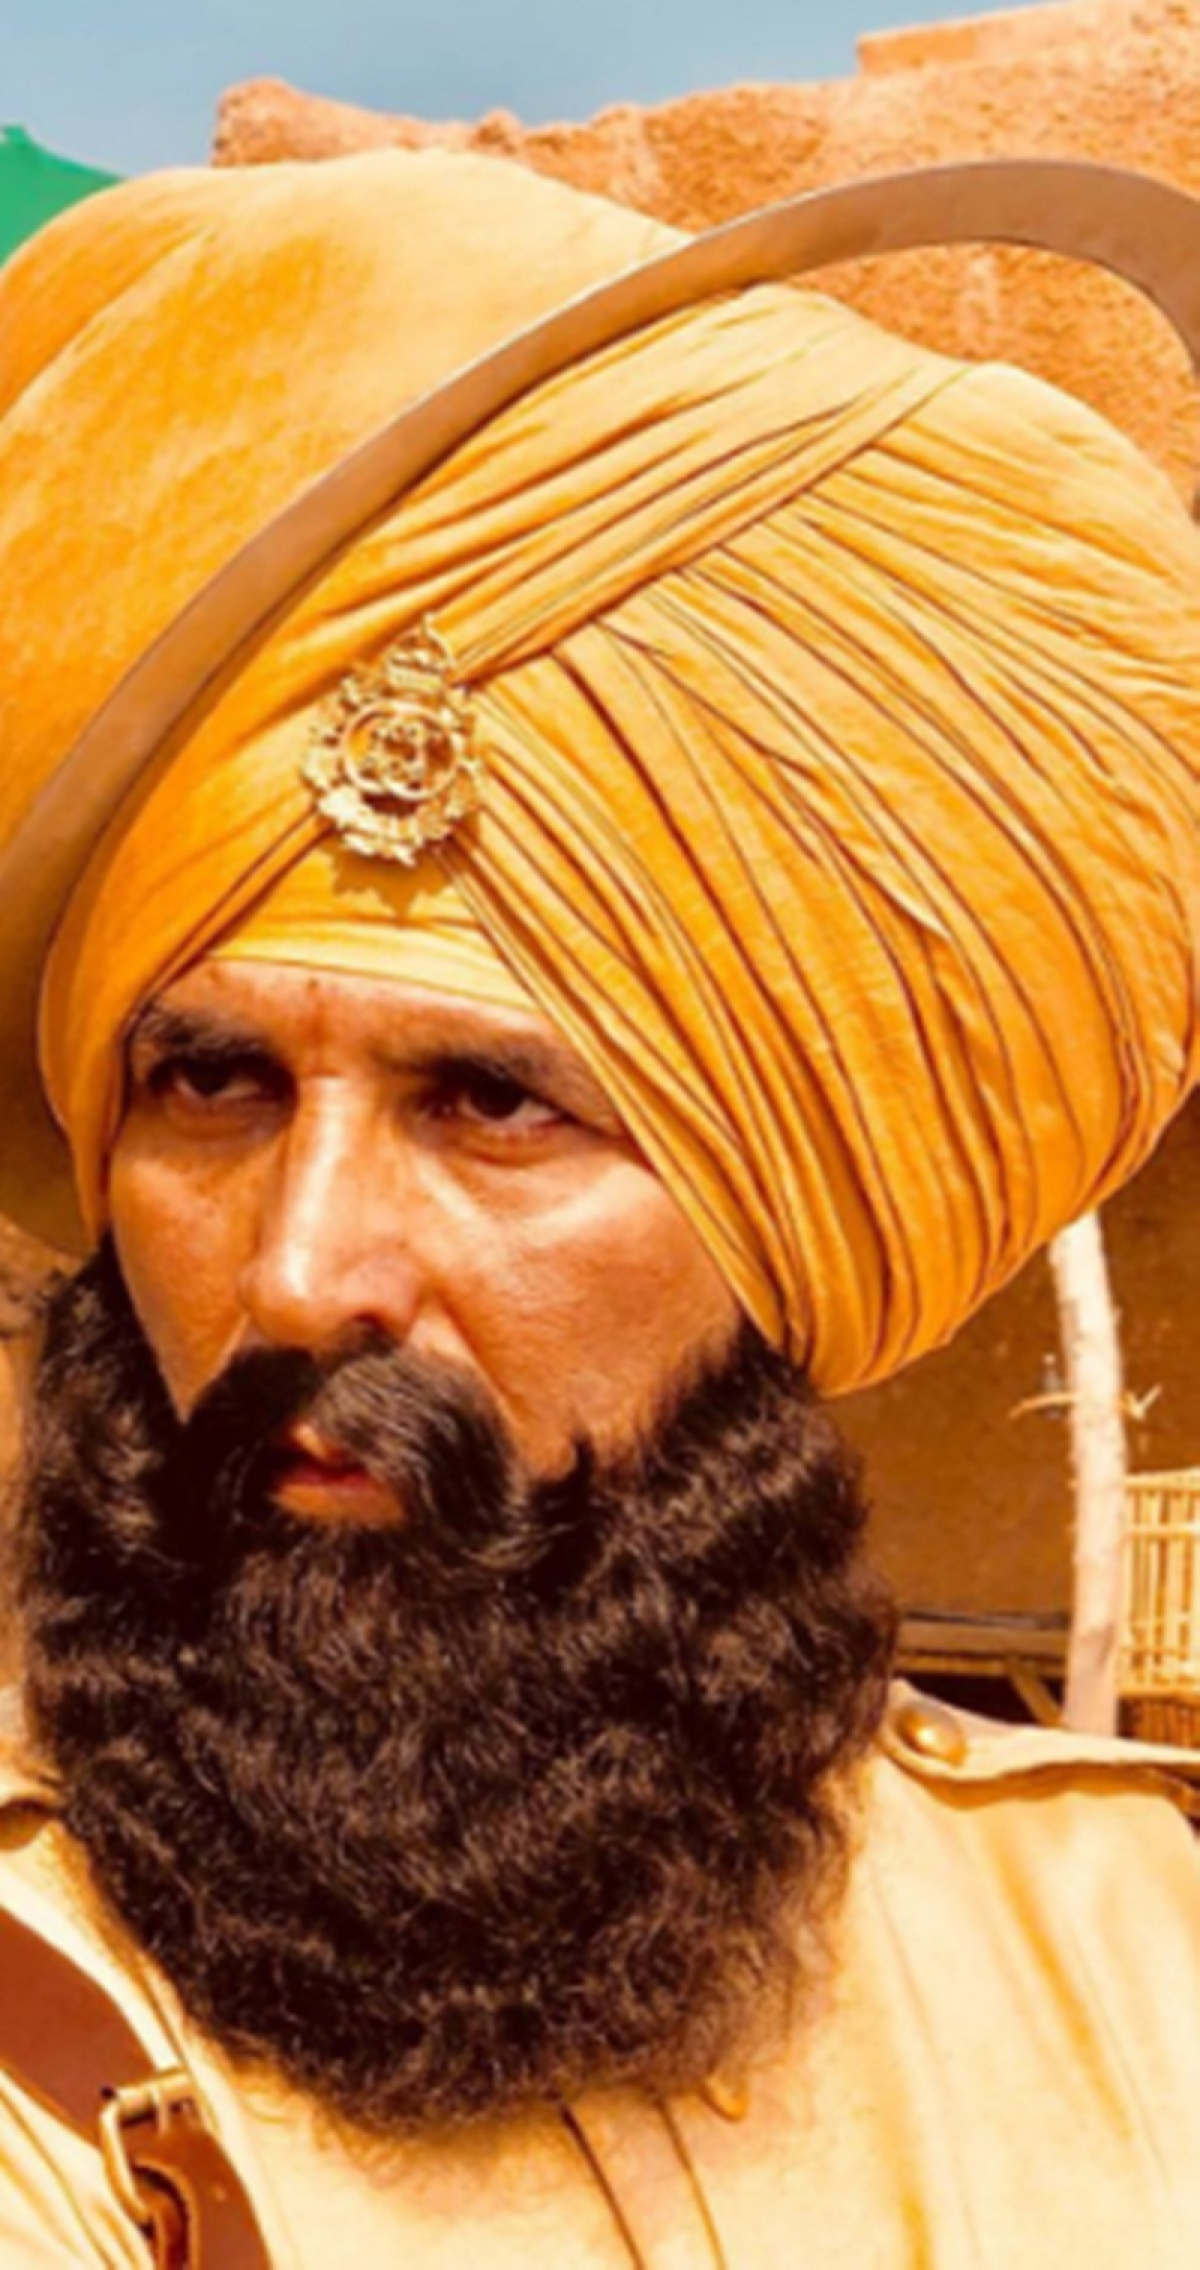 Akshay Kumar's 'Kesari' to release on March 21